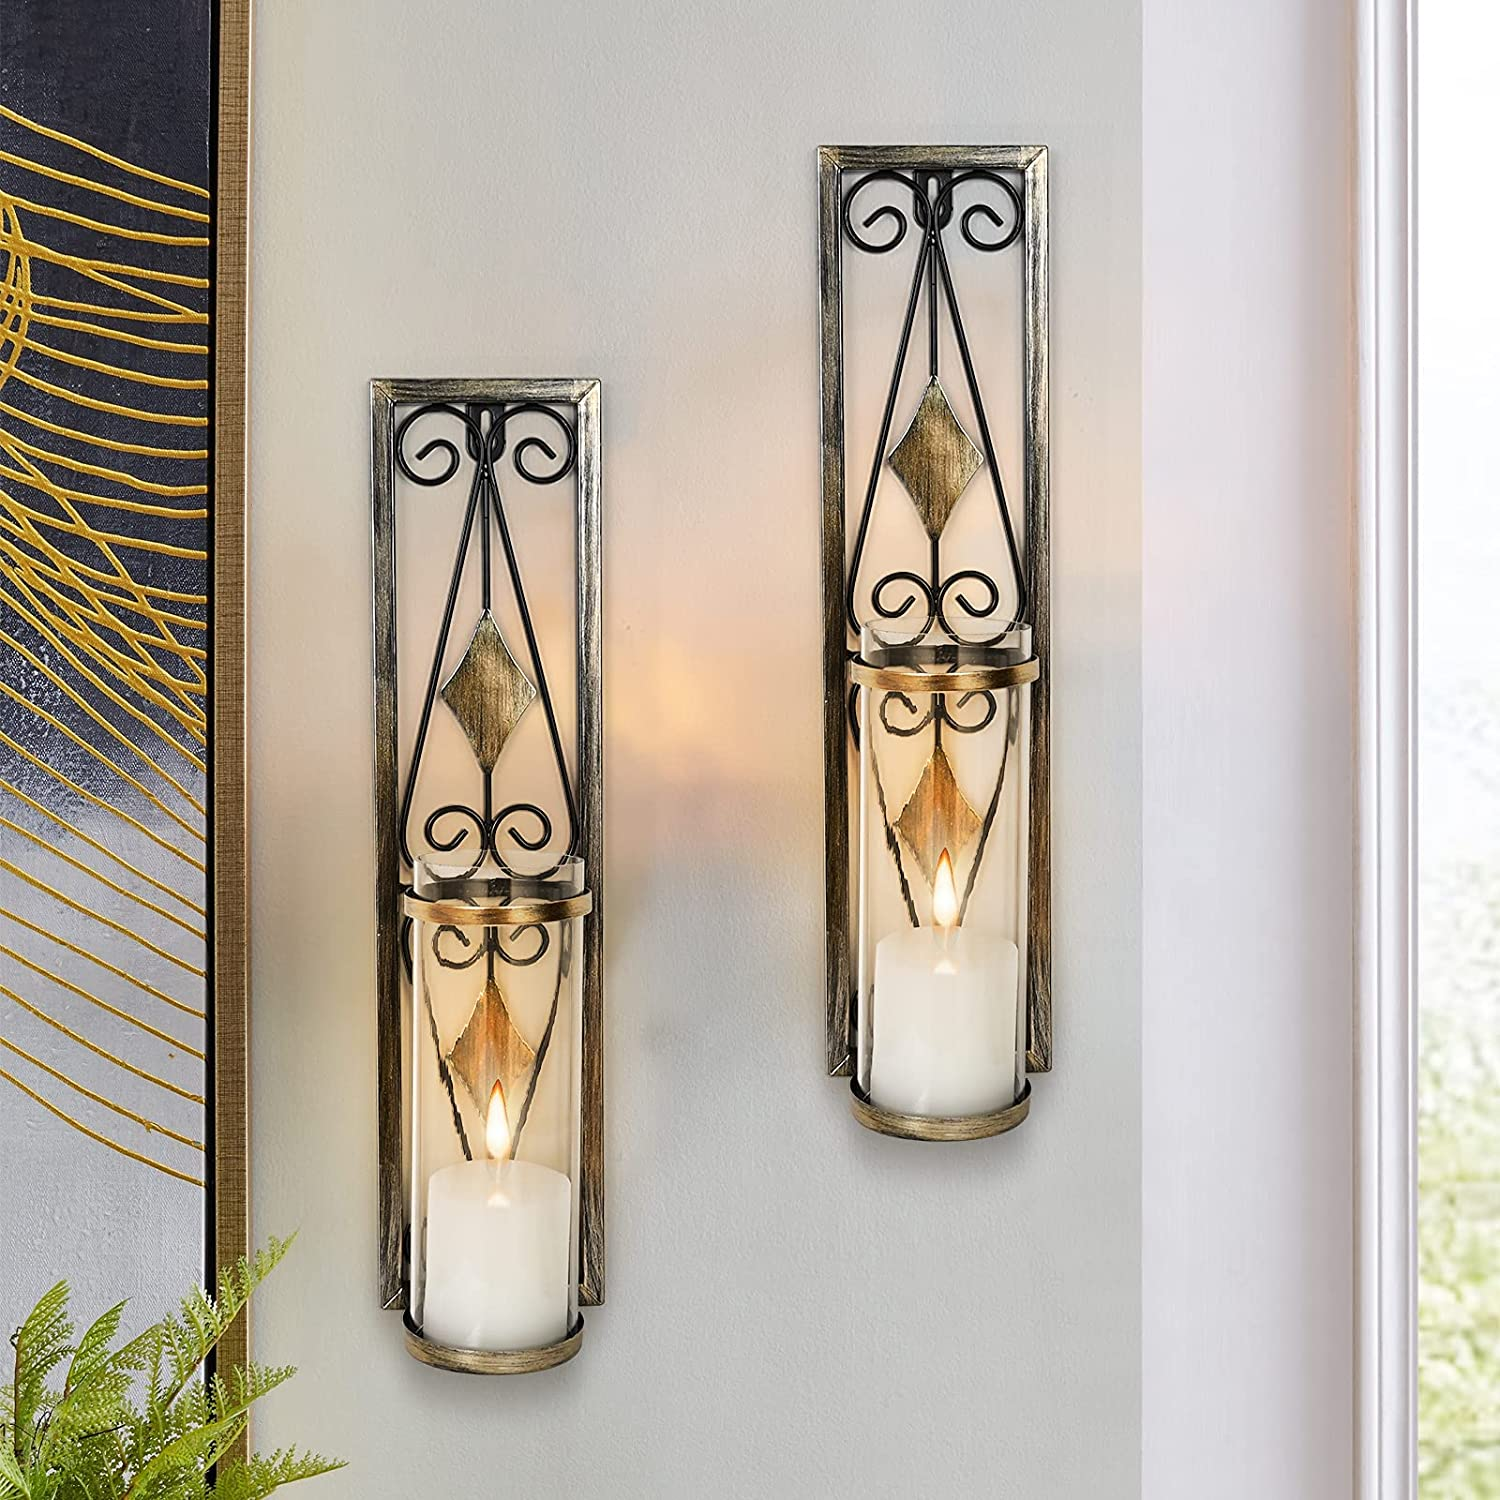 MISUMISO Wall Sconces Candle Holders Classic Metal Acrylic Wall Decorations with Unique Art Design for Living Room, Bathroom, Dining Room, Set of 2